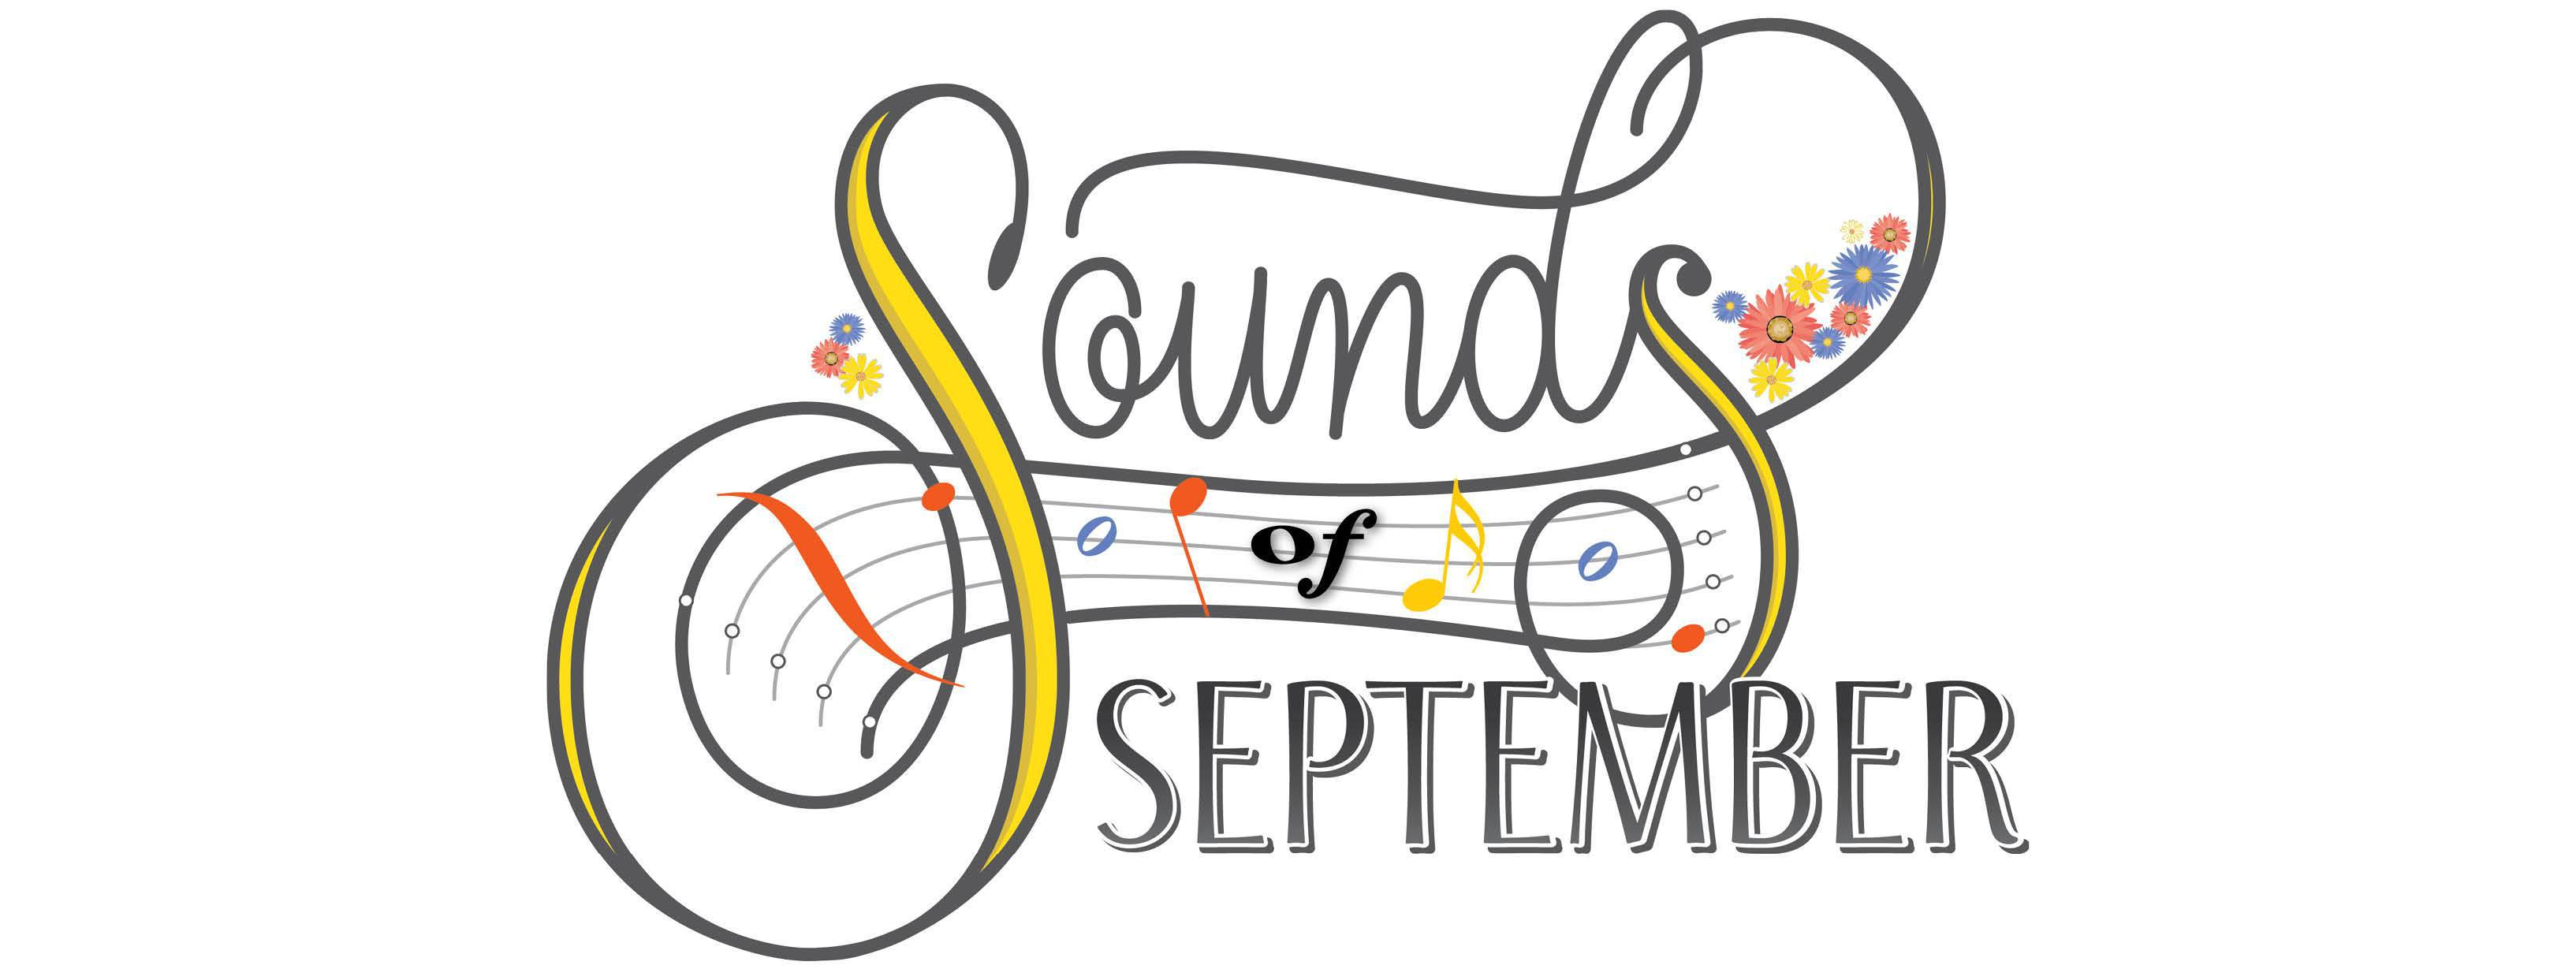 September events clipart clipart free download Sounds of September - Sydney clipart free download